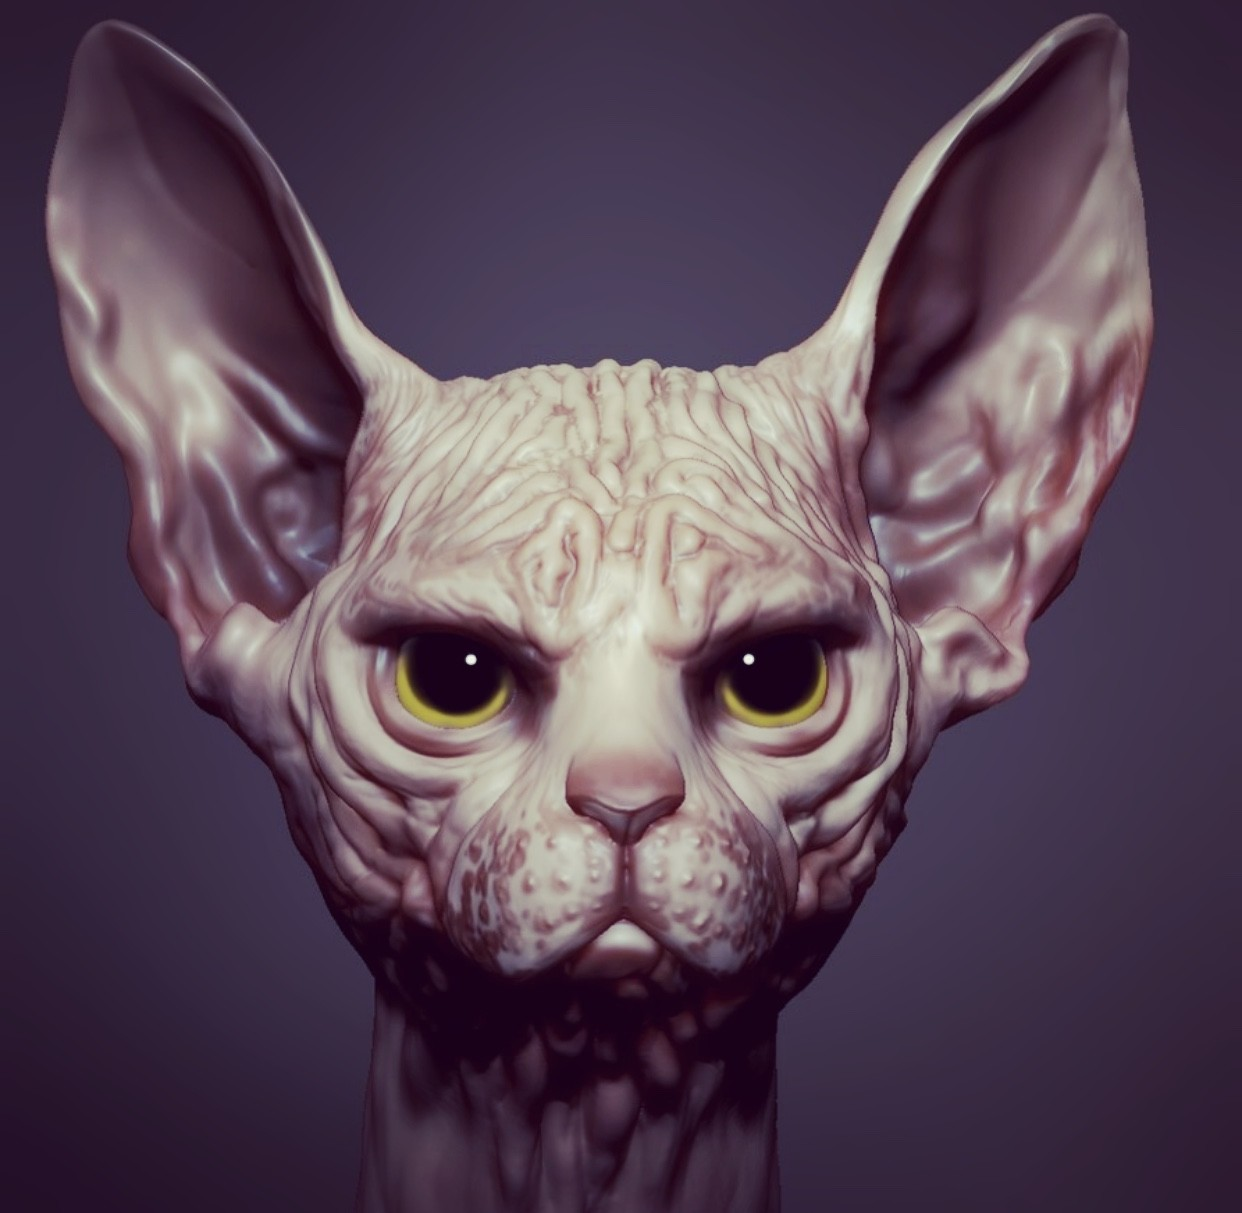 Taking up the sculptityourself Feline challenge by Rafael Grassetti -WIP